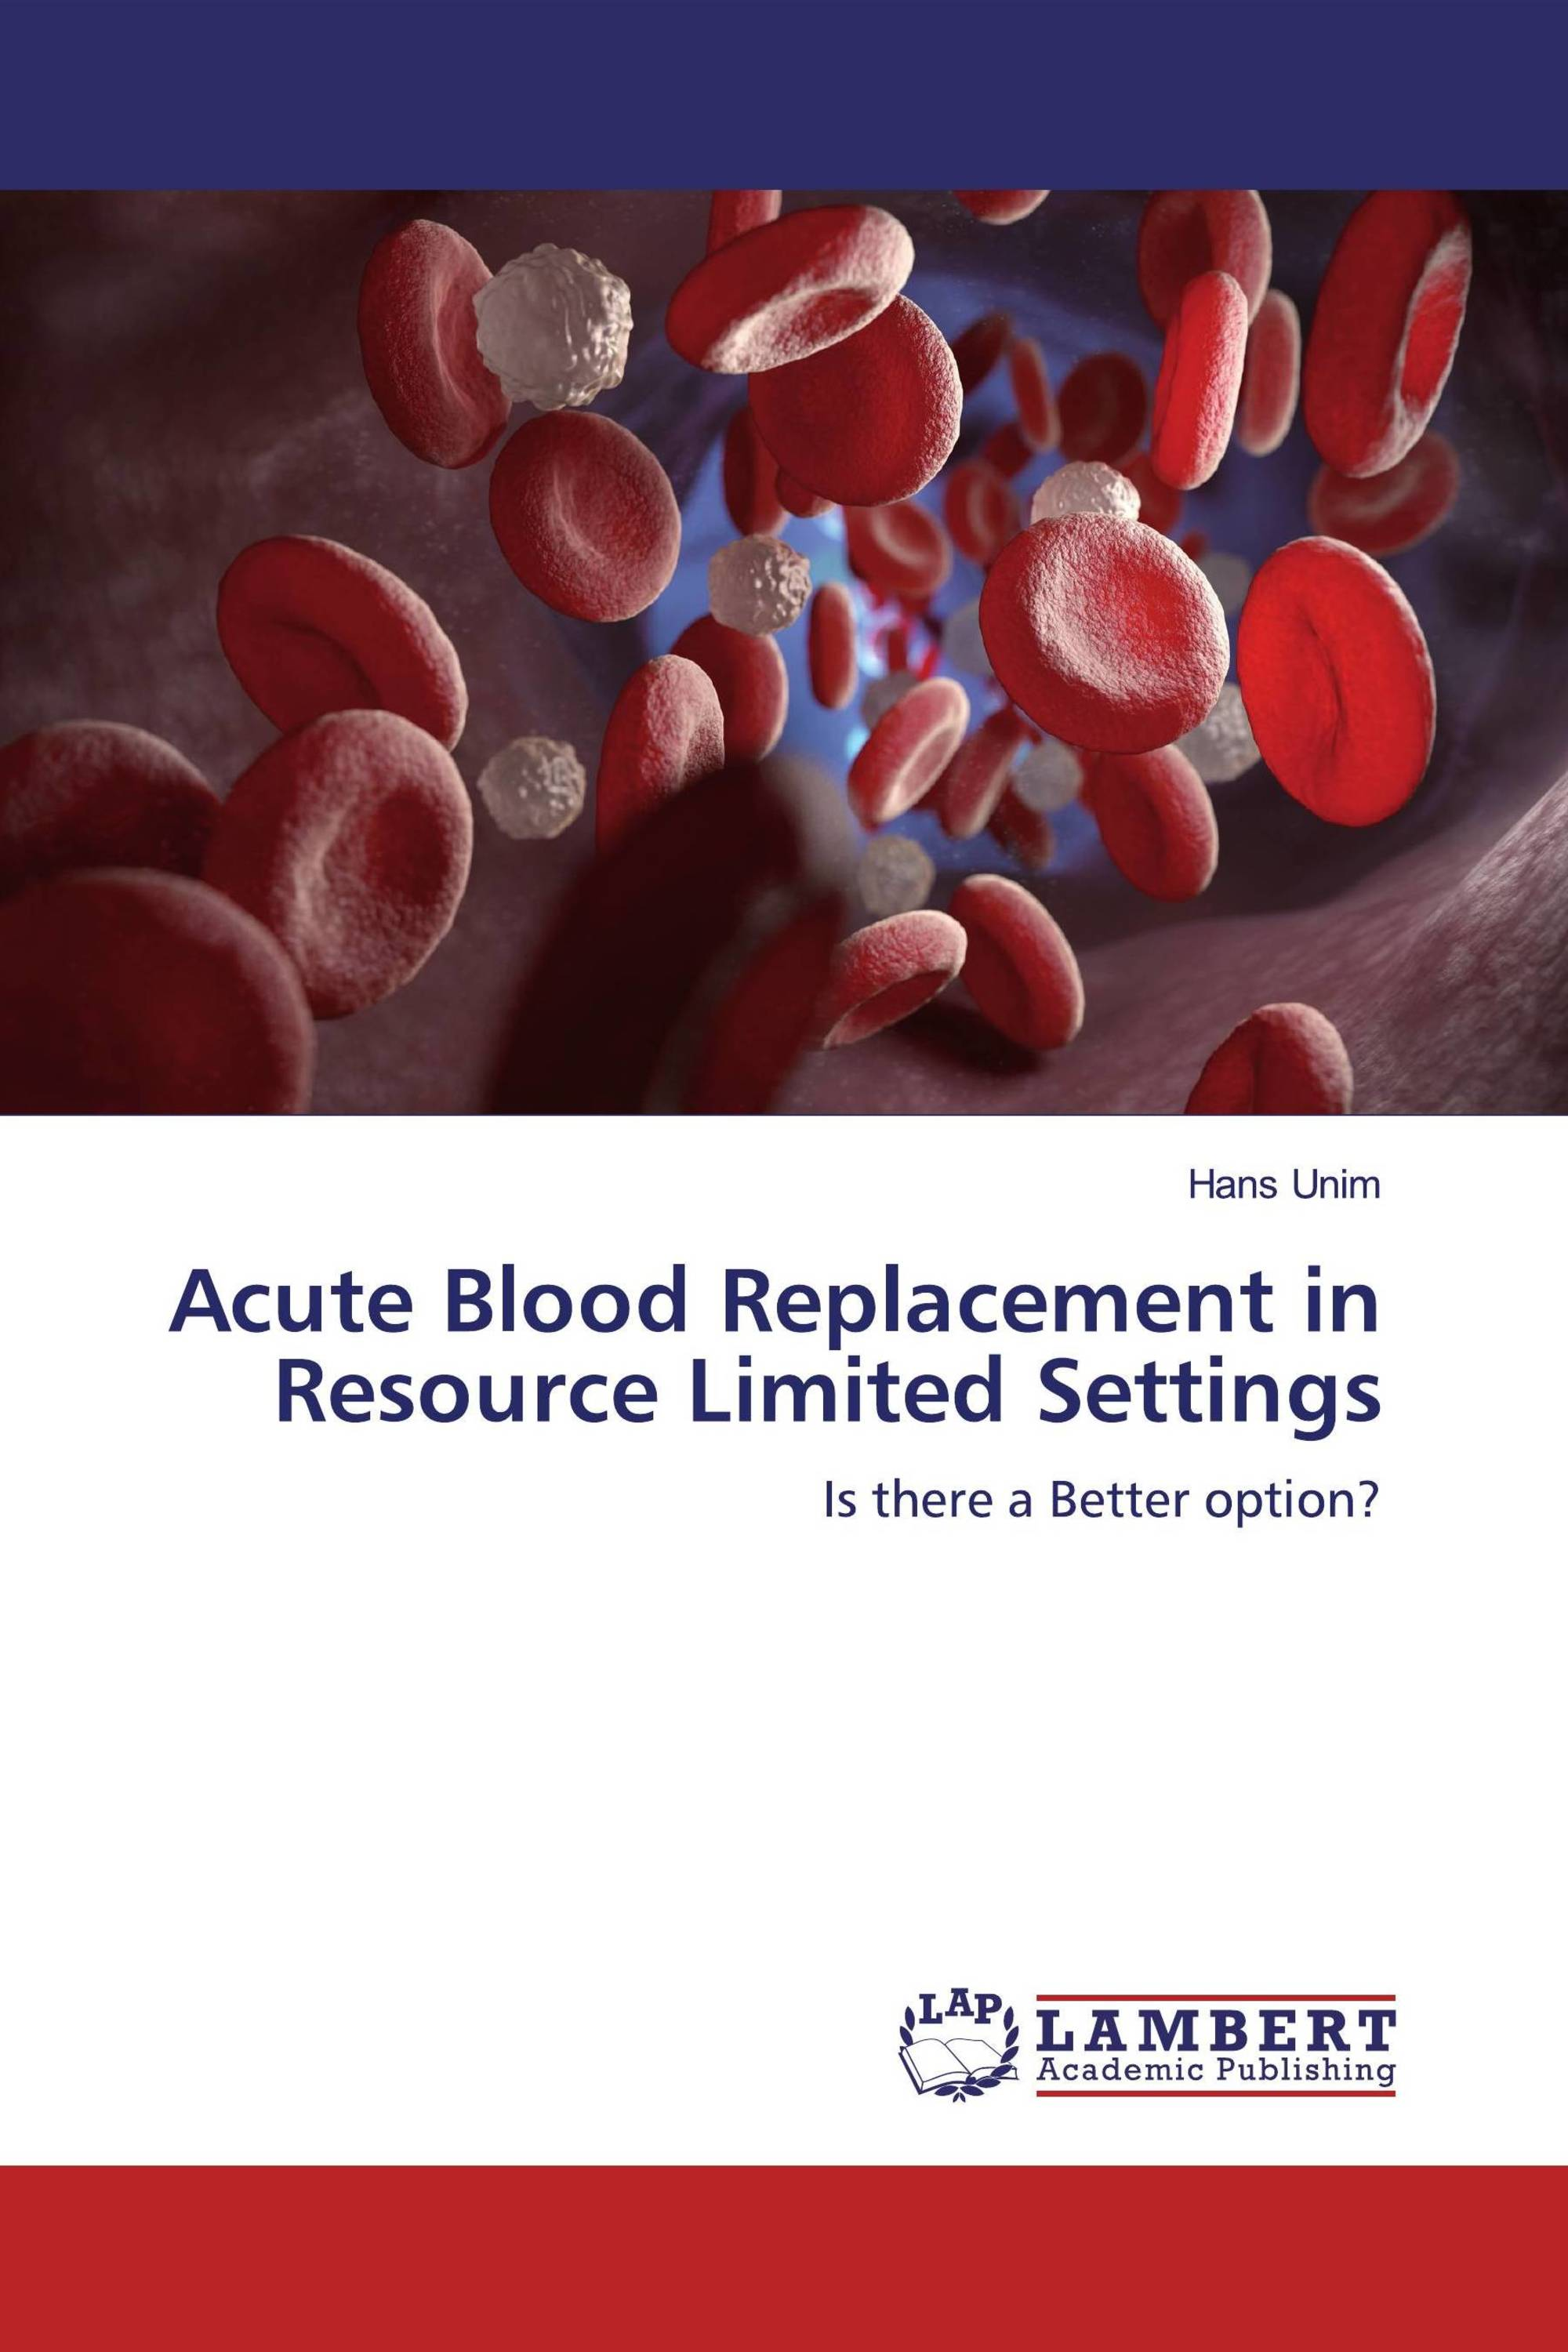 Acute Blood Replacement in Resource Limited Settings